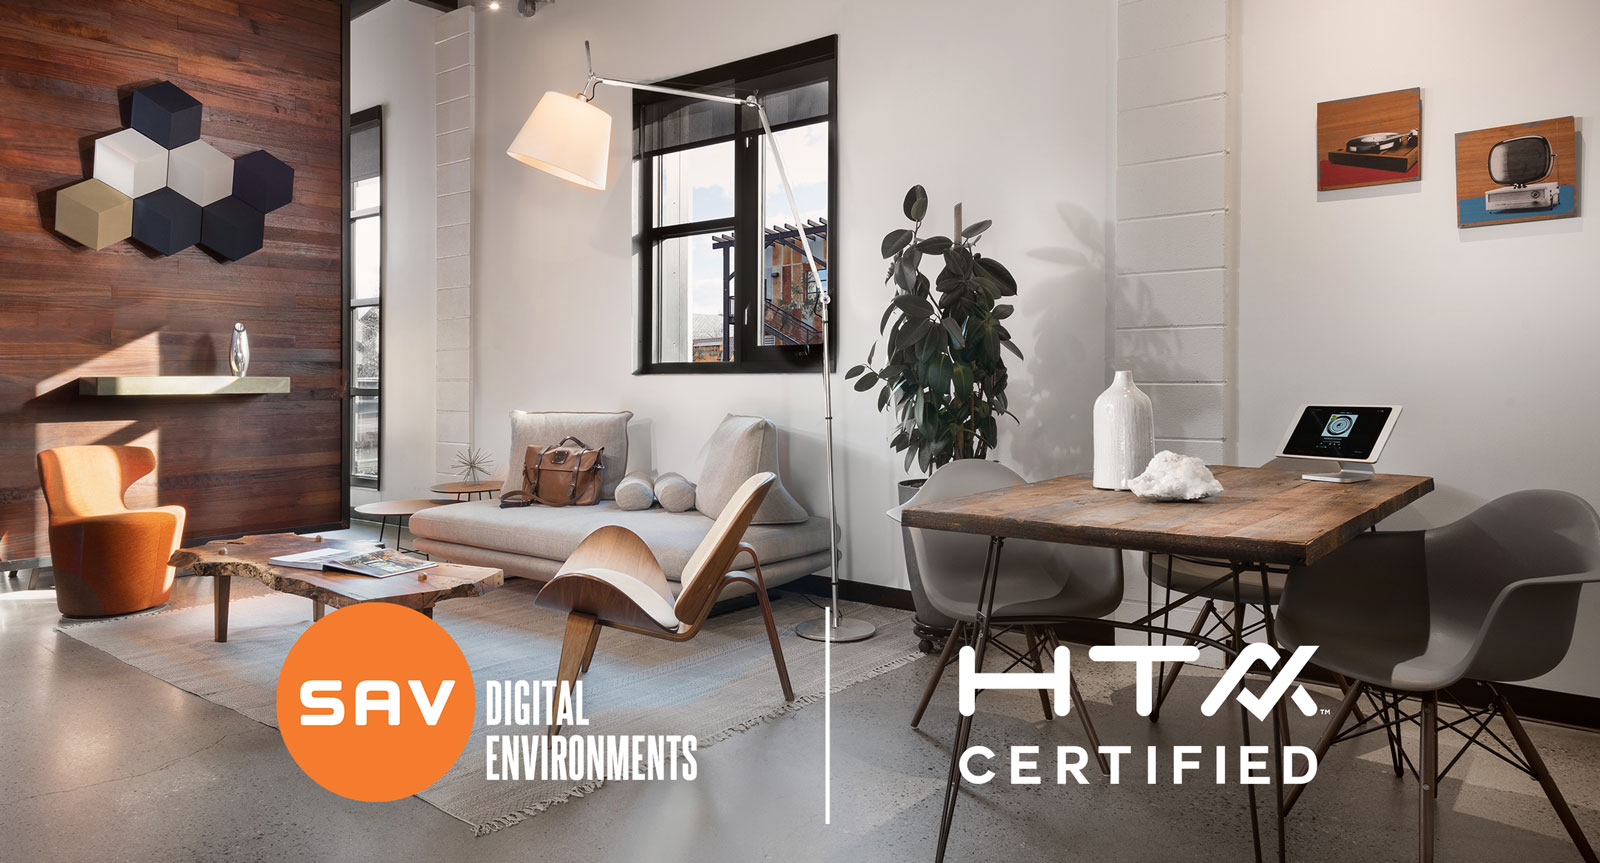 SAV-HTA-Certified-Blog.jpg